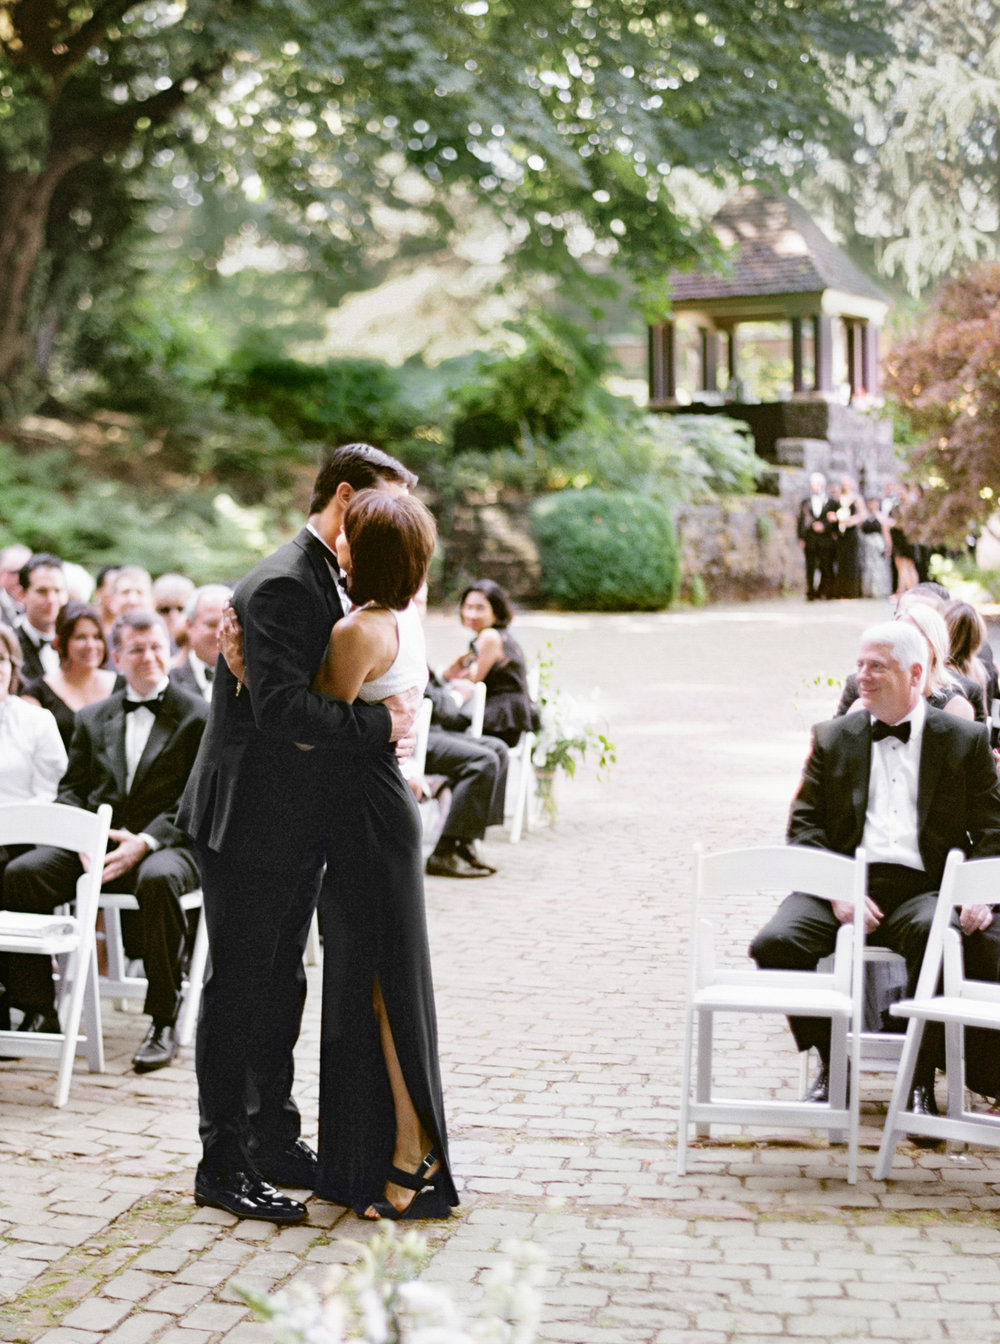 125OutliveCreative_Travel_Photographer_Videographer_Lewis&Clark_Oregon_Elegant_BlackTie_Destination_Wedding.jpg